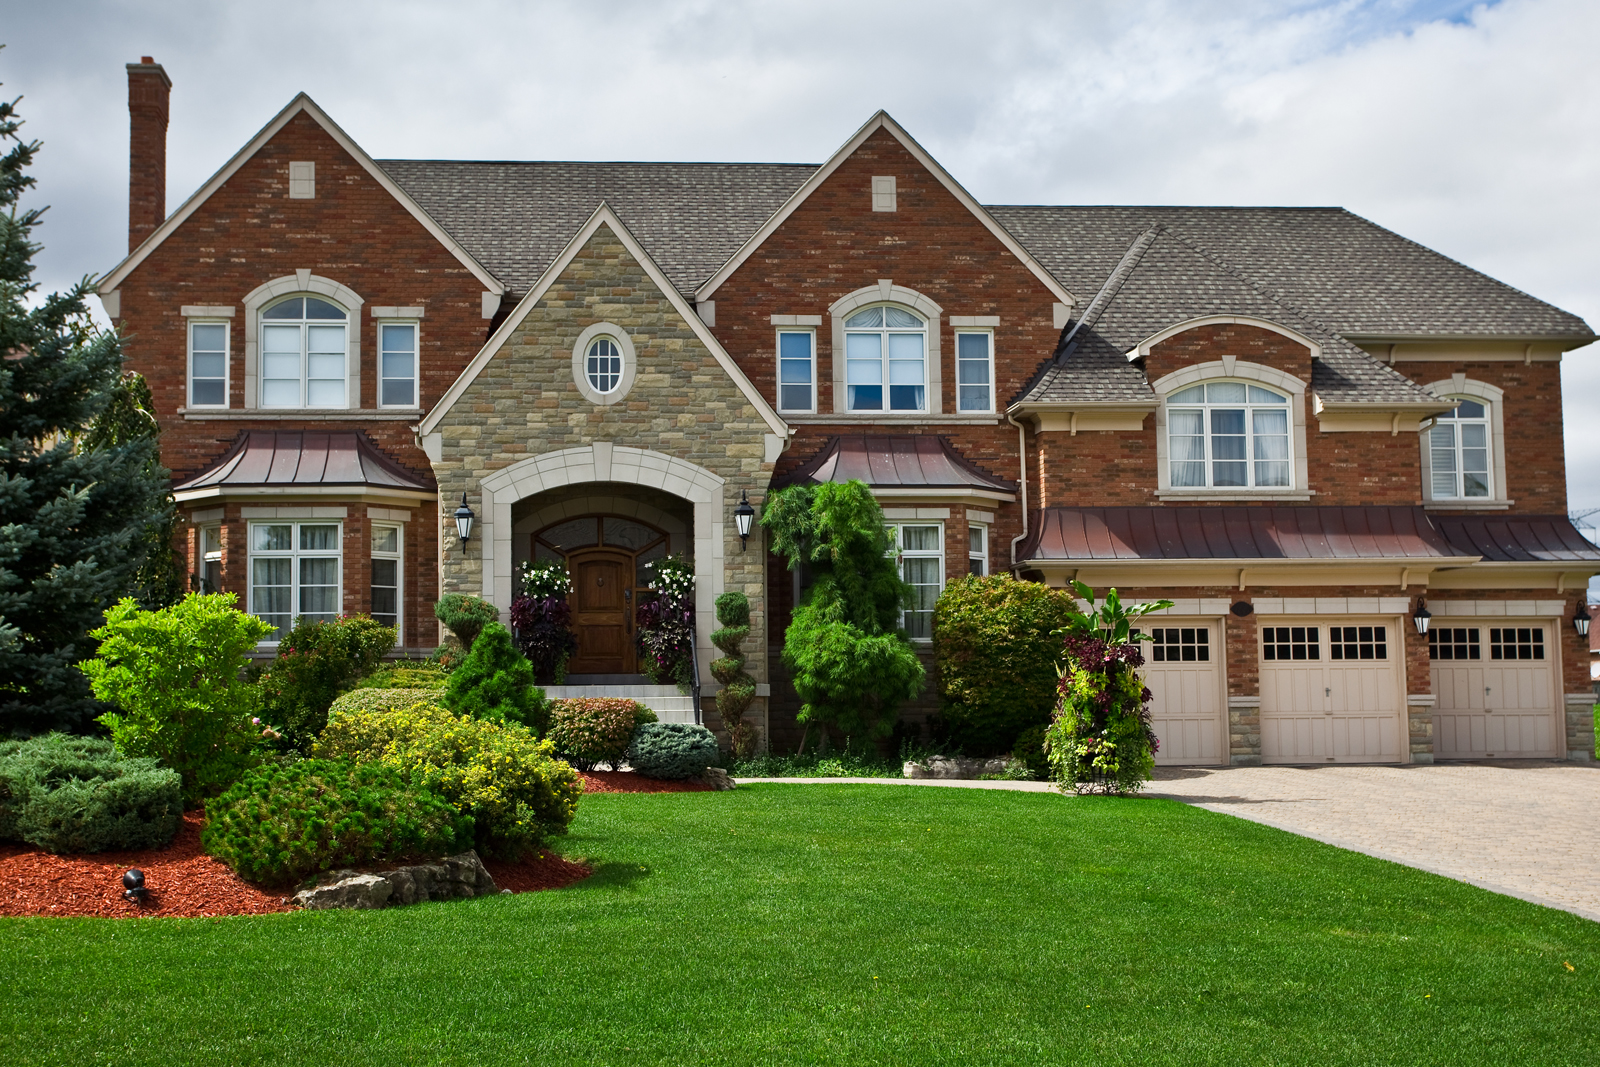 Best Home Improvements for Resell